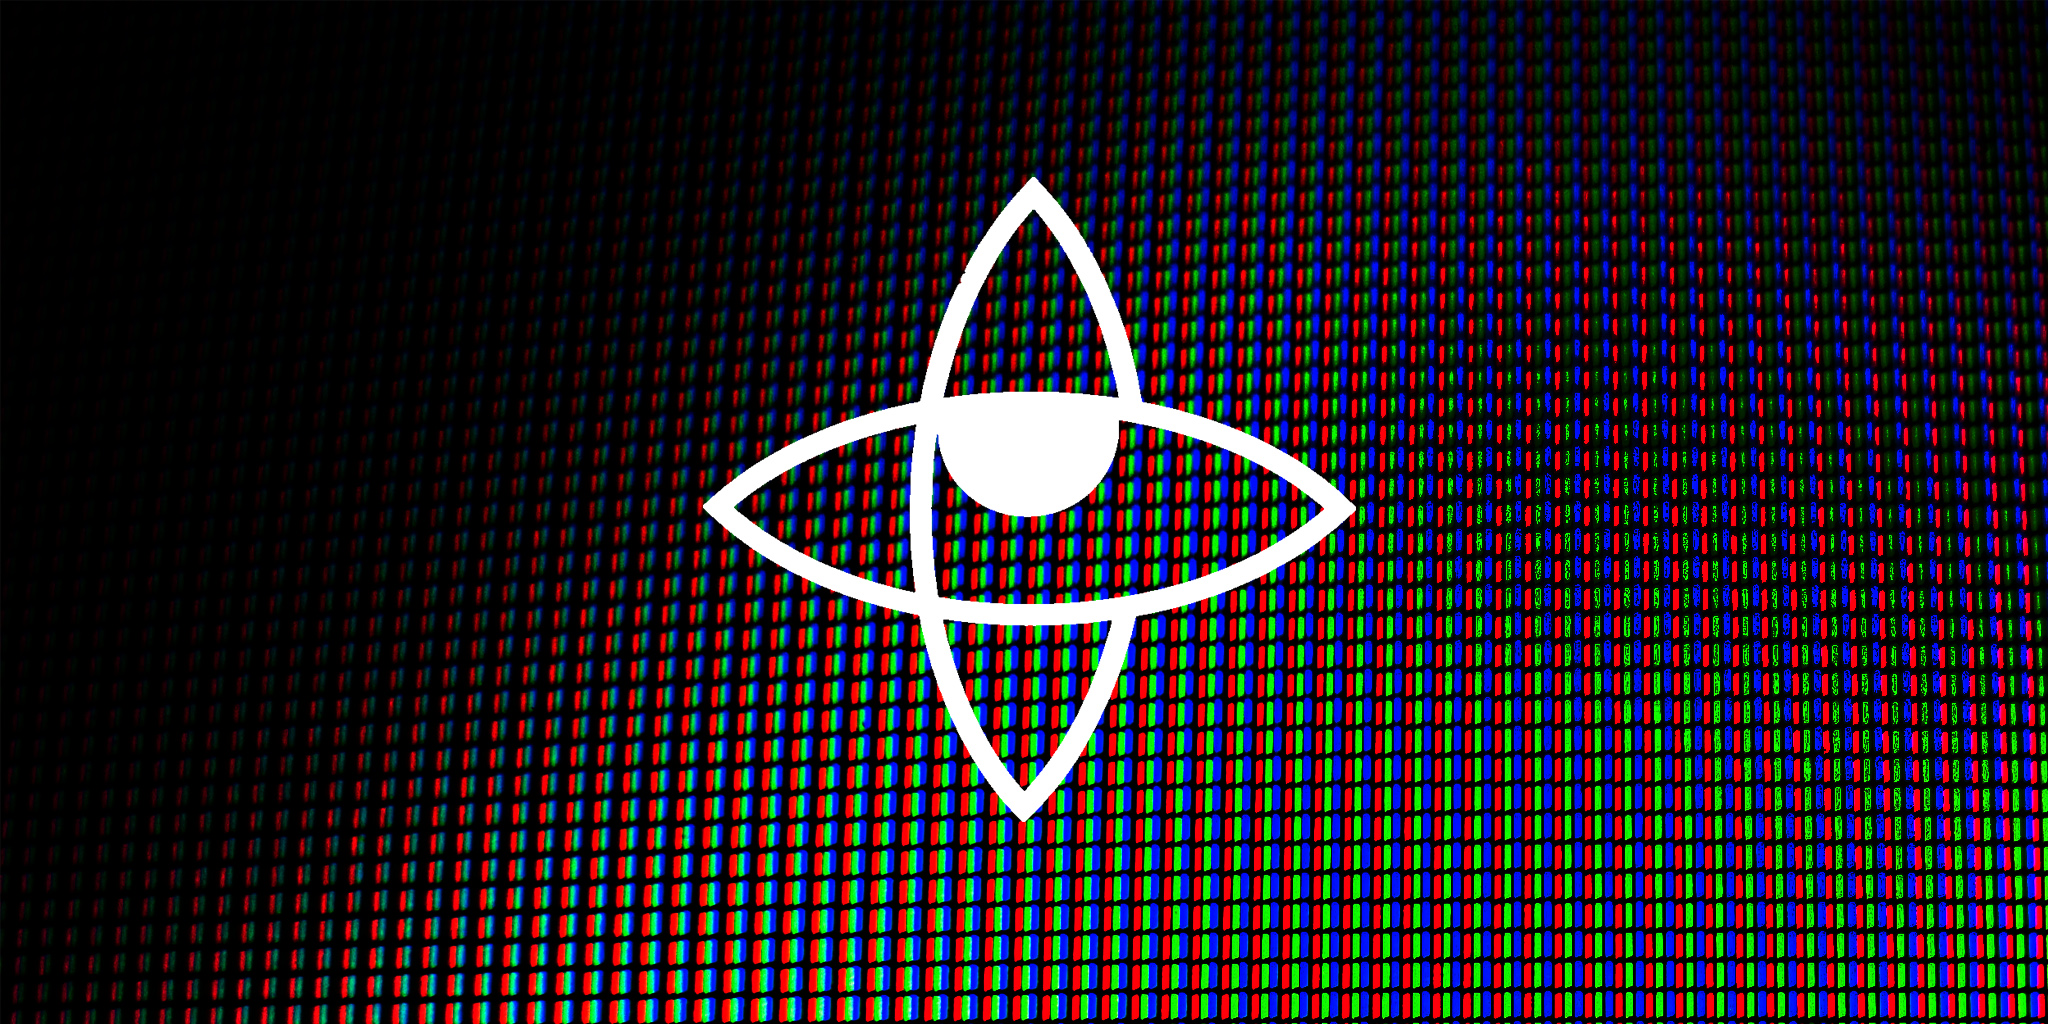 IDENTITY  Futuravision  The technology conference for all things human technology related, needed a logo that communicated vision, humanity and dynamic energy. The spinning eye motif doubled as an isotope-like atom icon.